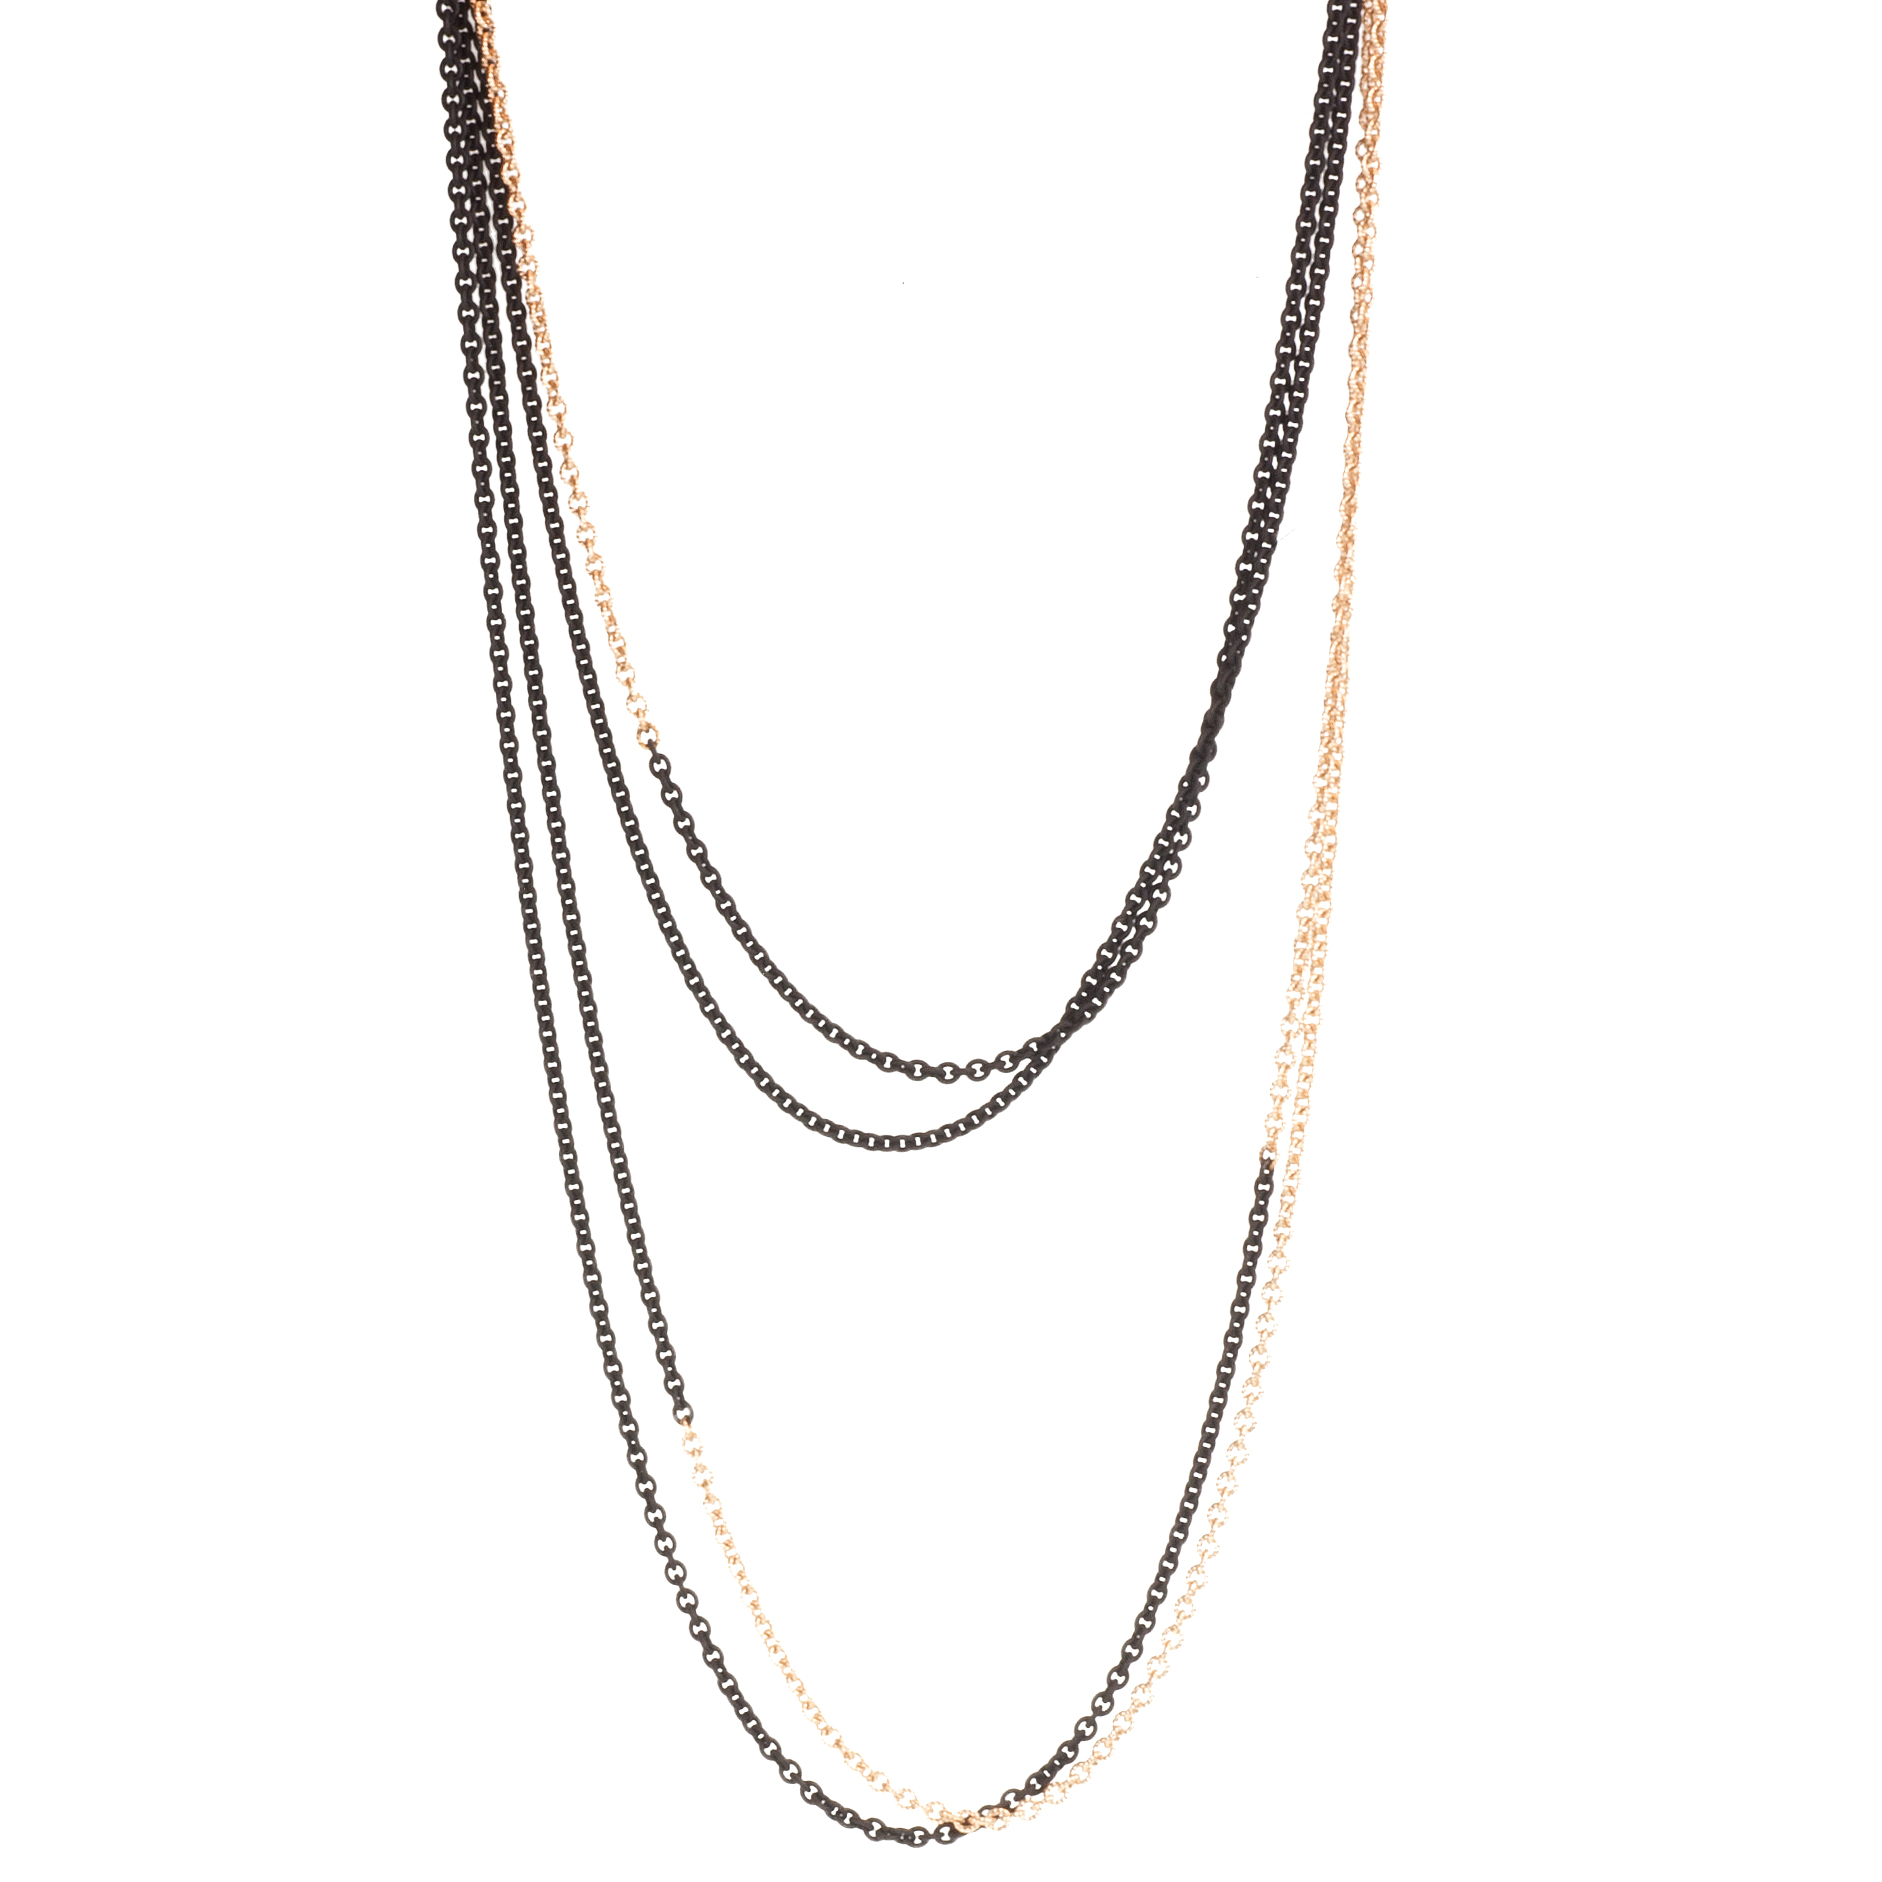 Two-tone, two-strand chain necklace